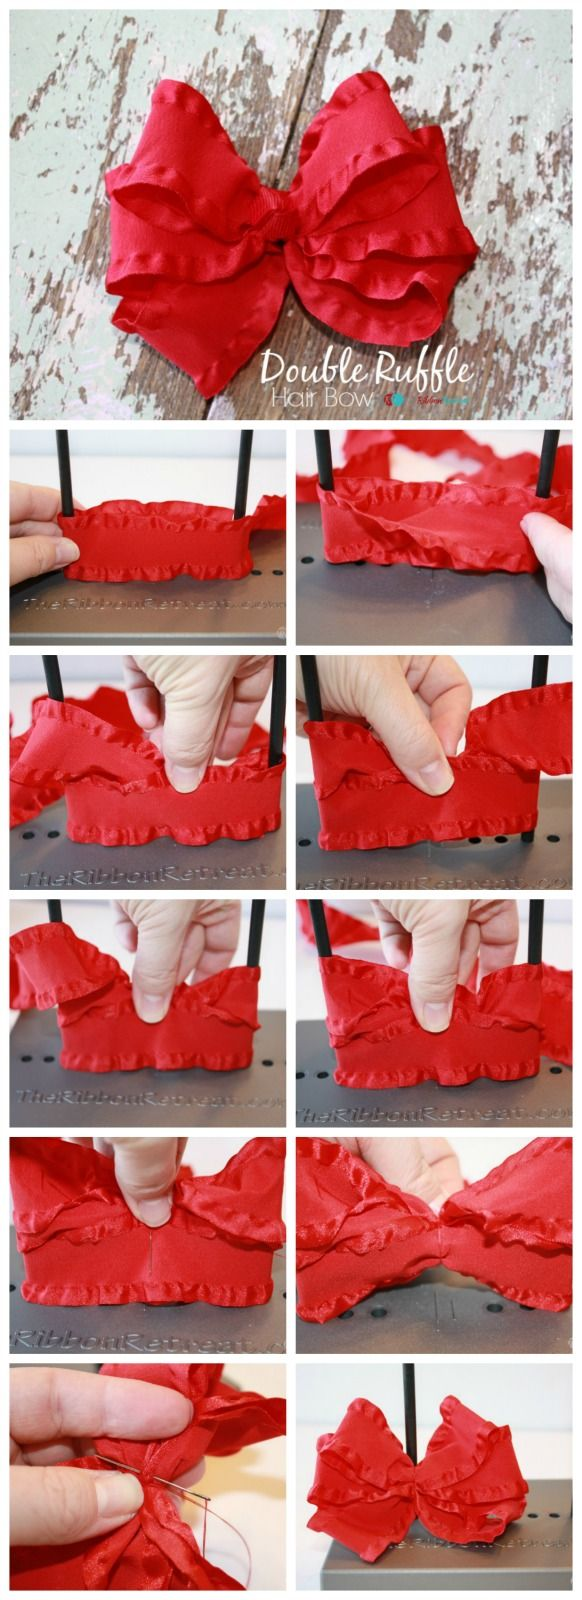 17 Best Ideas About Double Ruffle On Pinterest Bows For